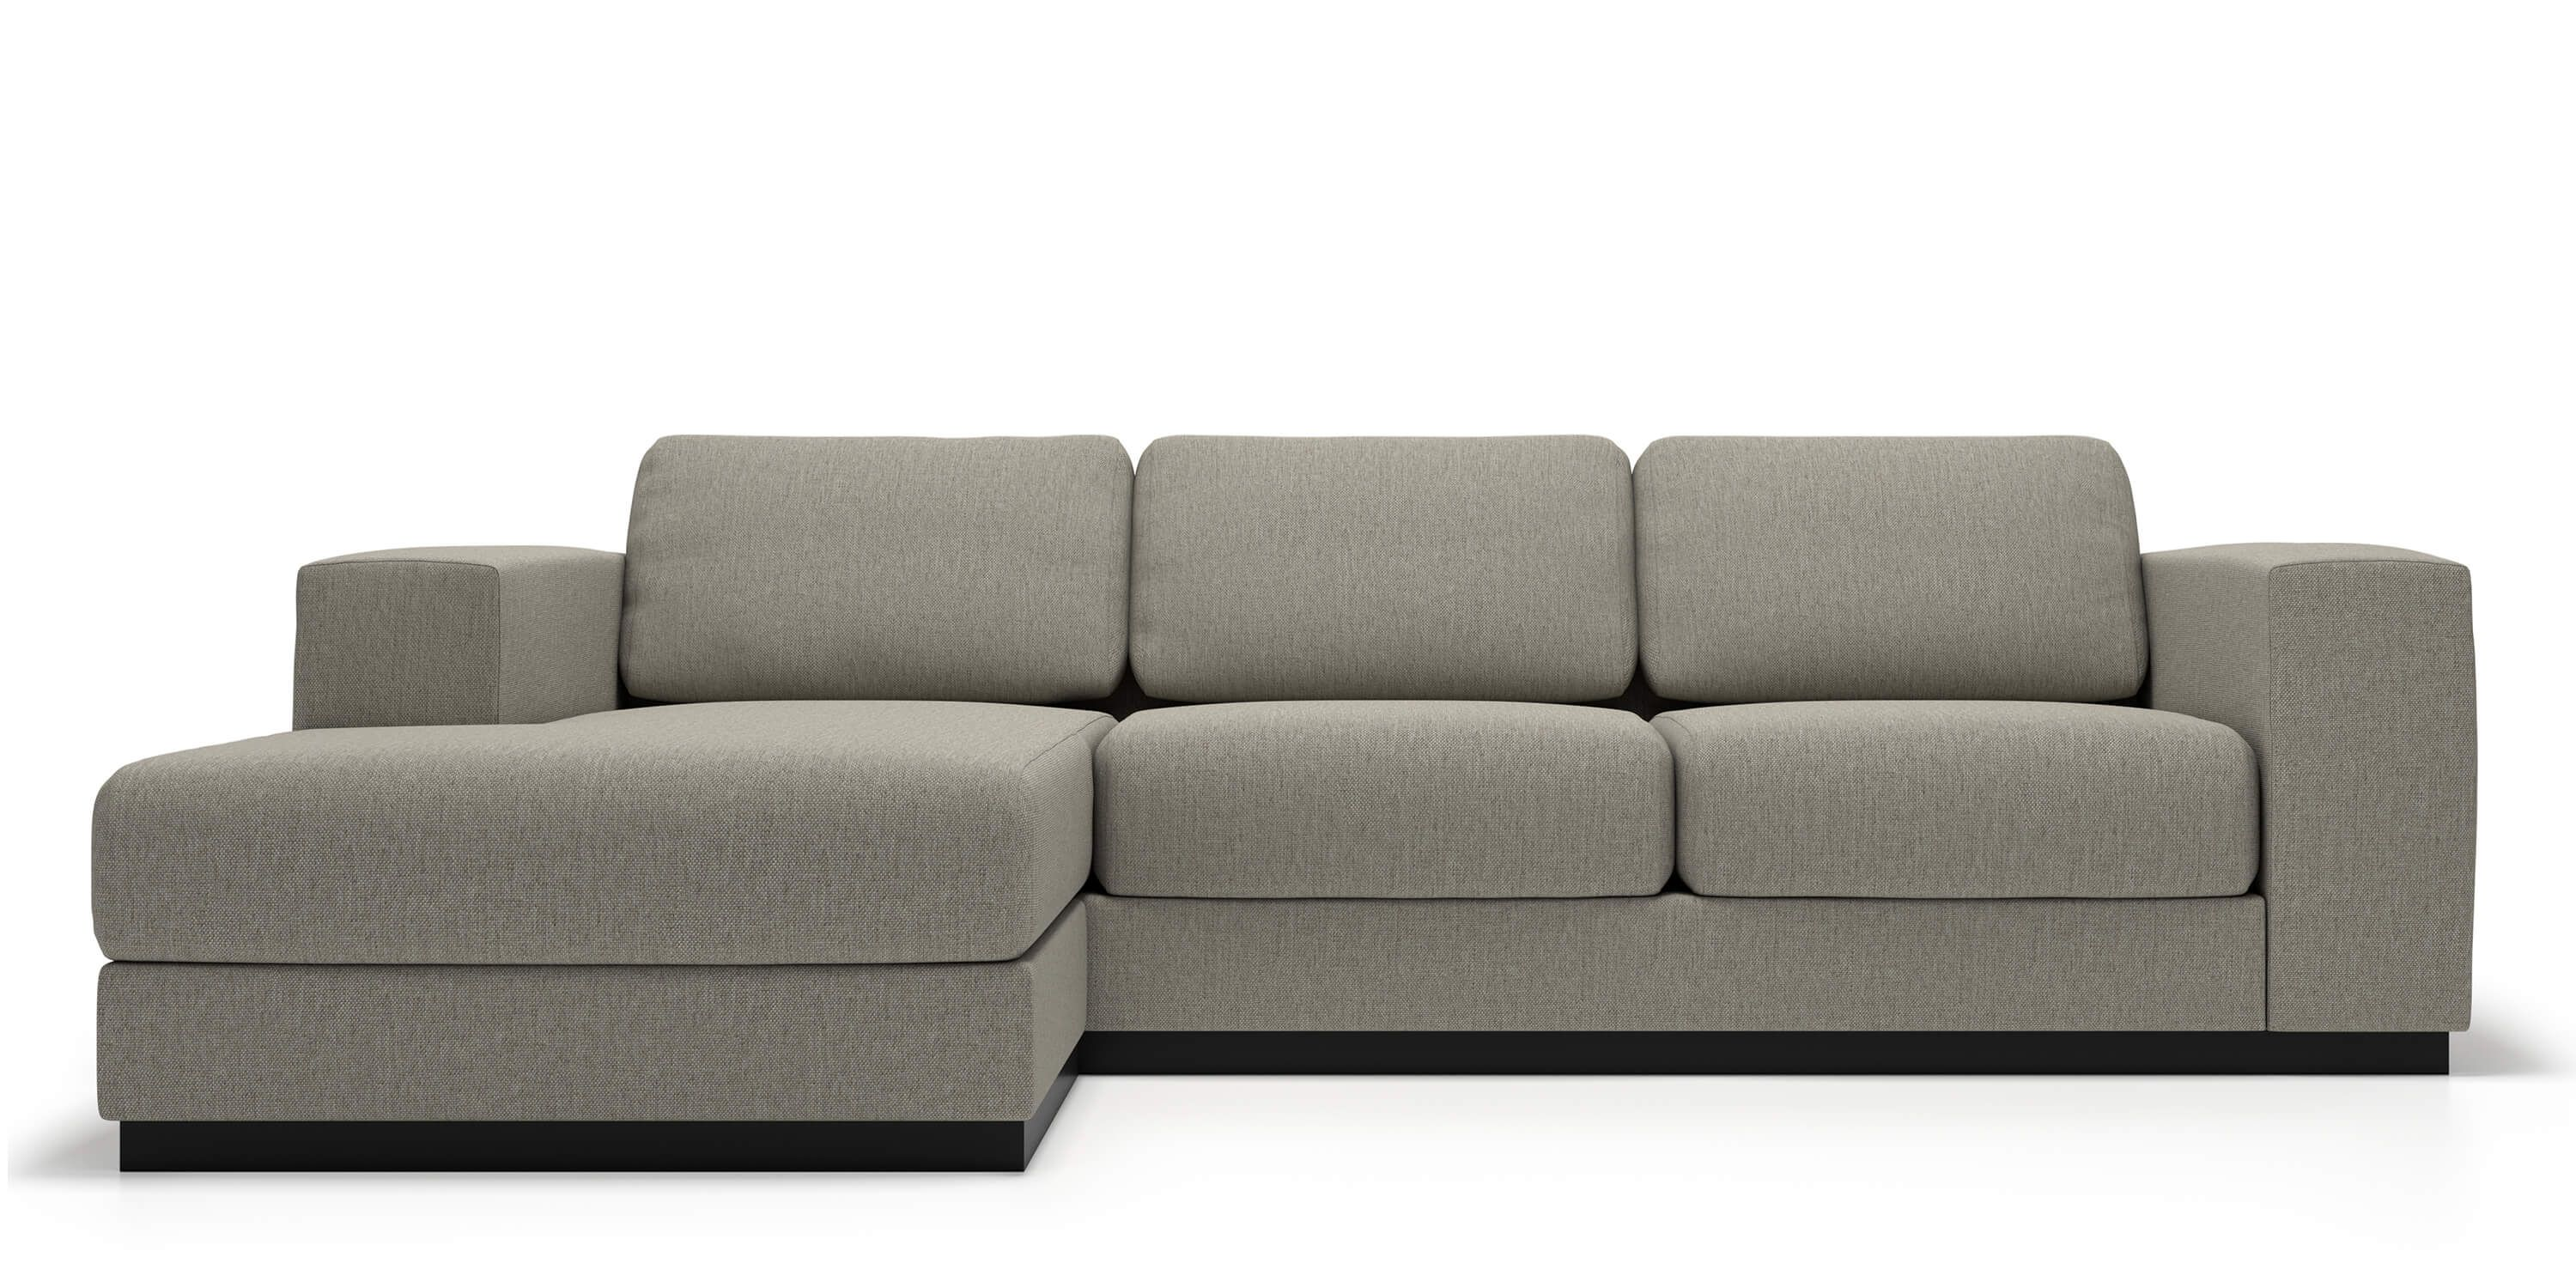 go number rooms monticello products essentials casual sectional sectionals sofa belfort item upholstery to